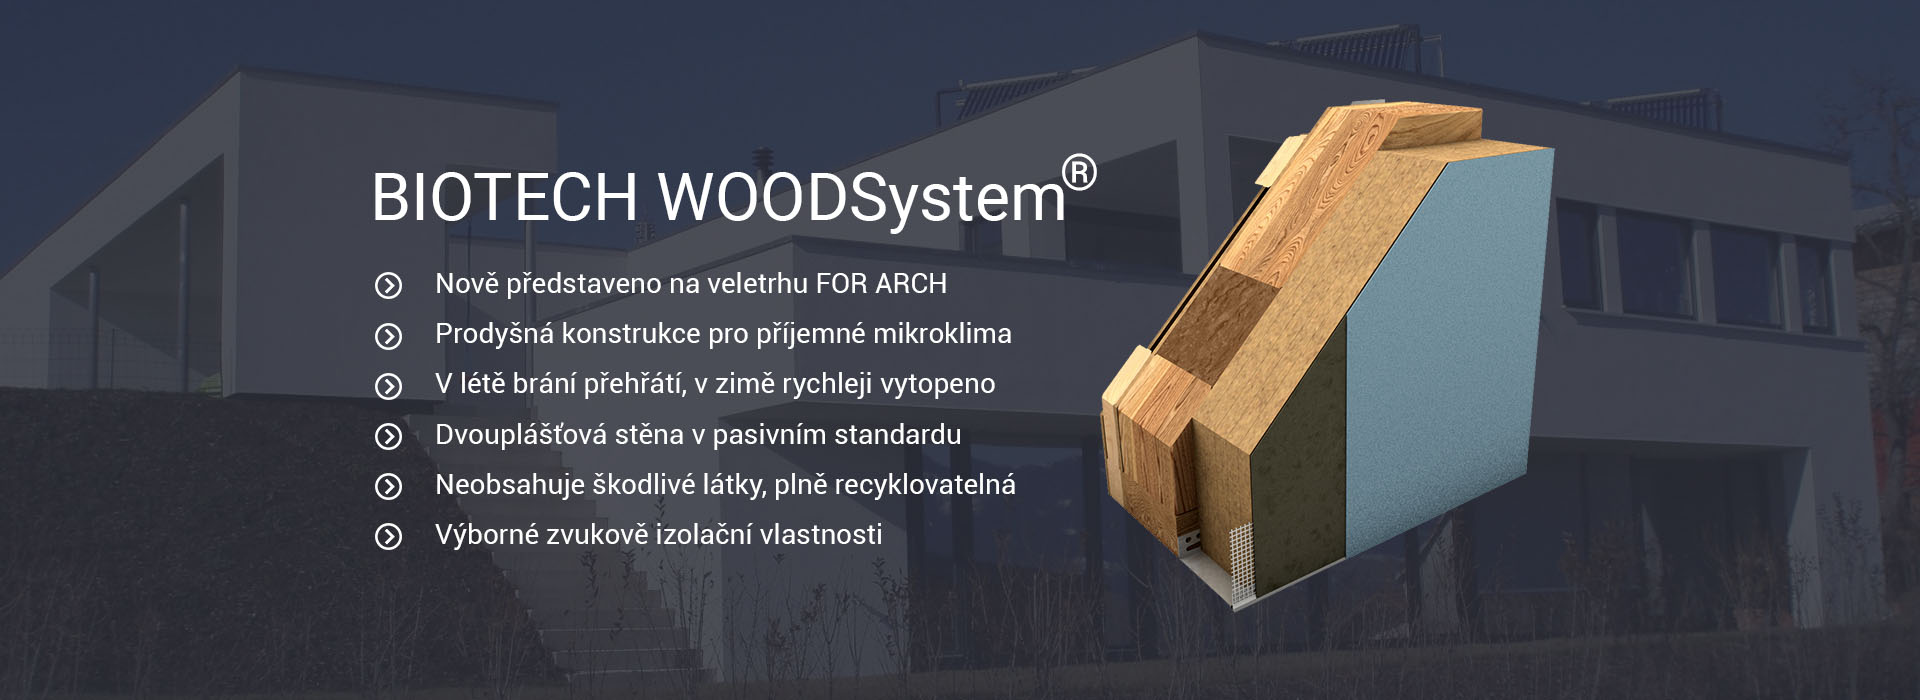 BIOTECH WOODSystem<sup>®</sup>